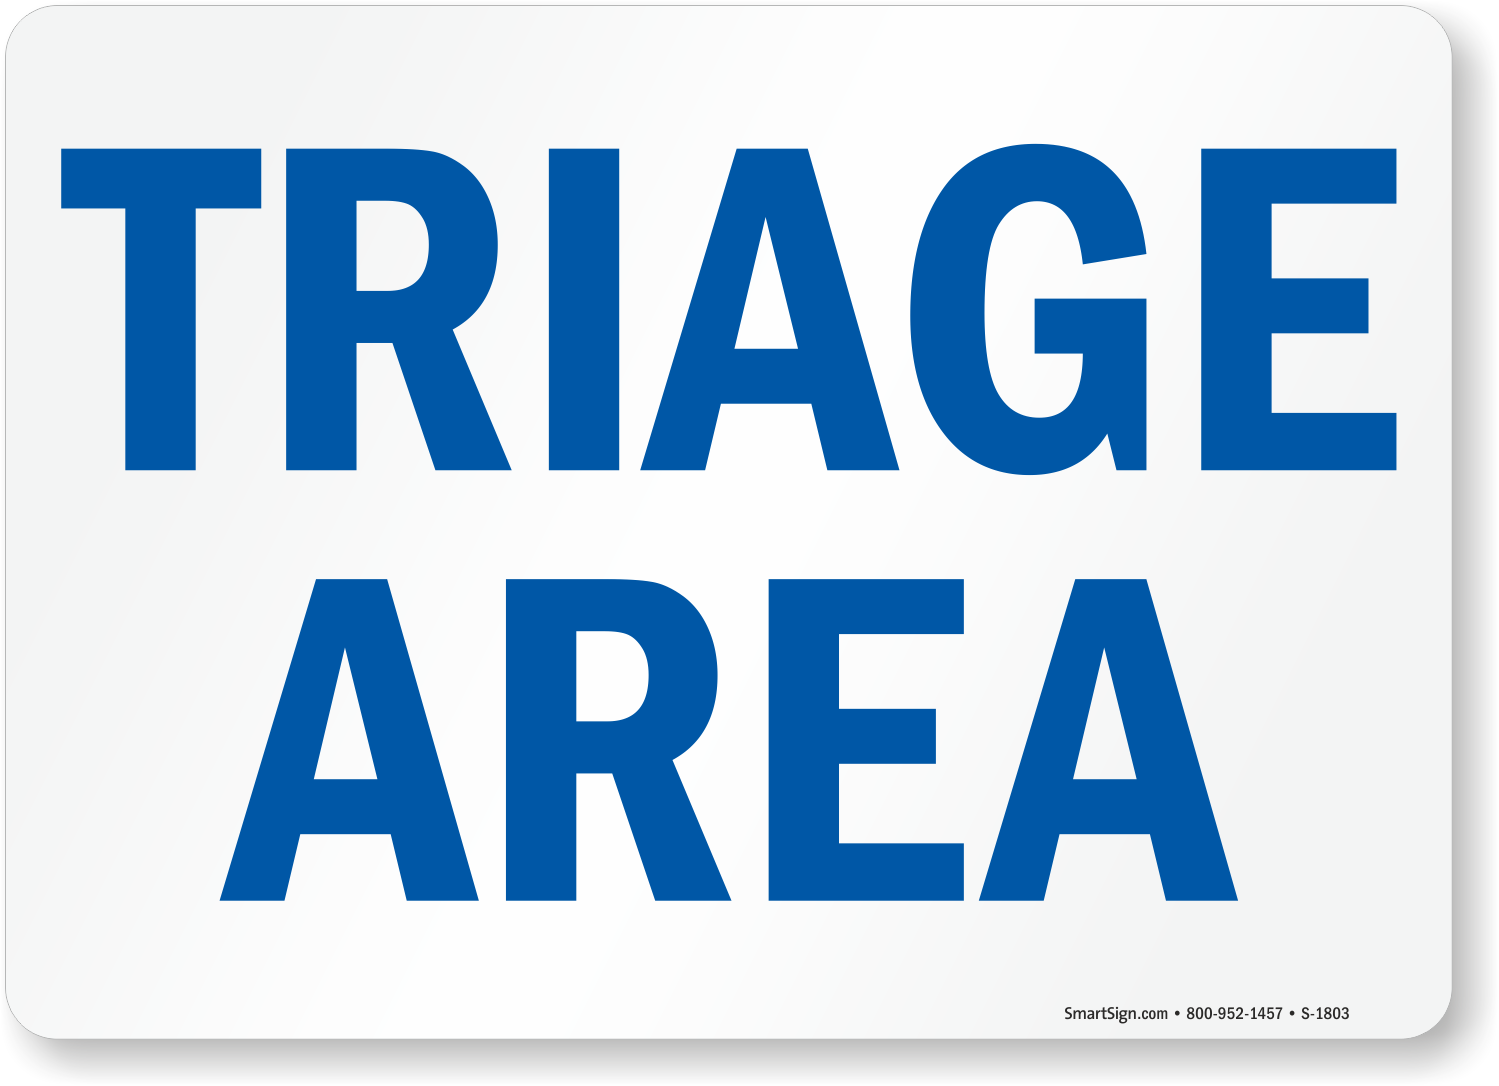 triage area signs durable signs for emergency triage medical clipart free download medical clipart images vital signs